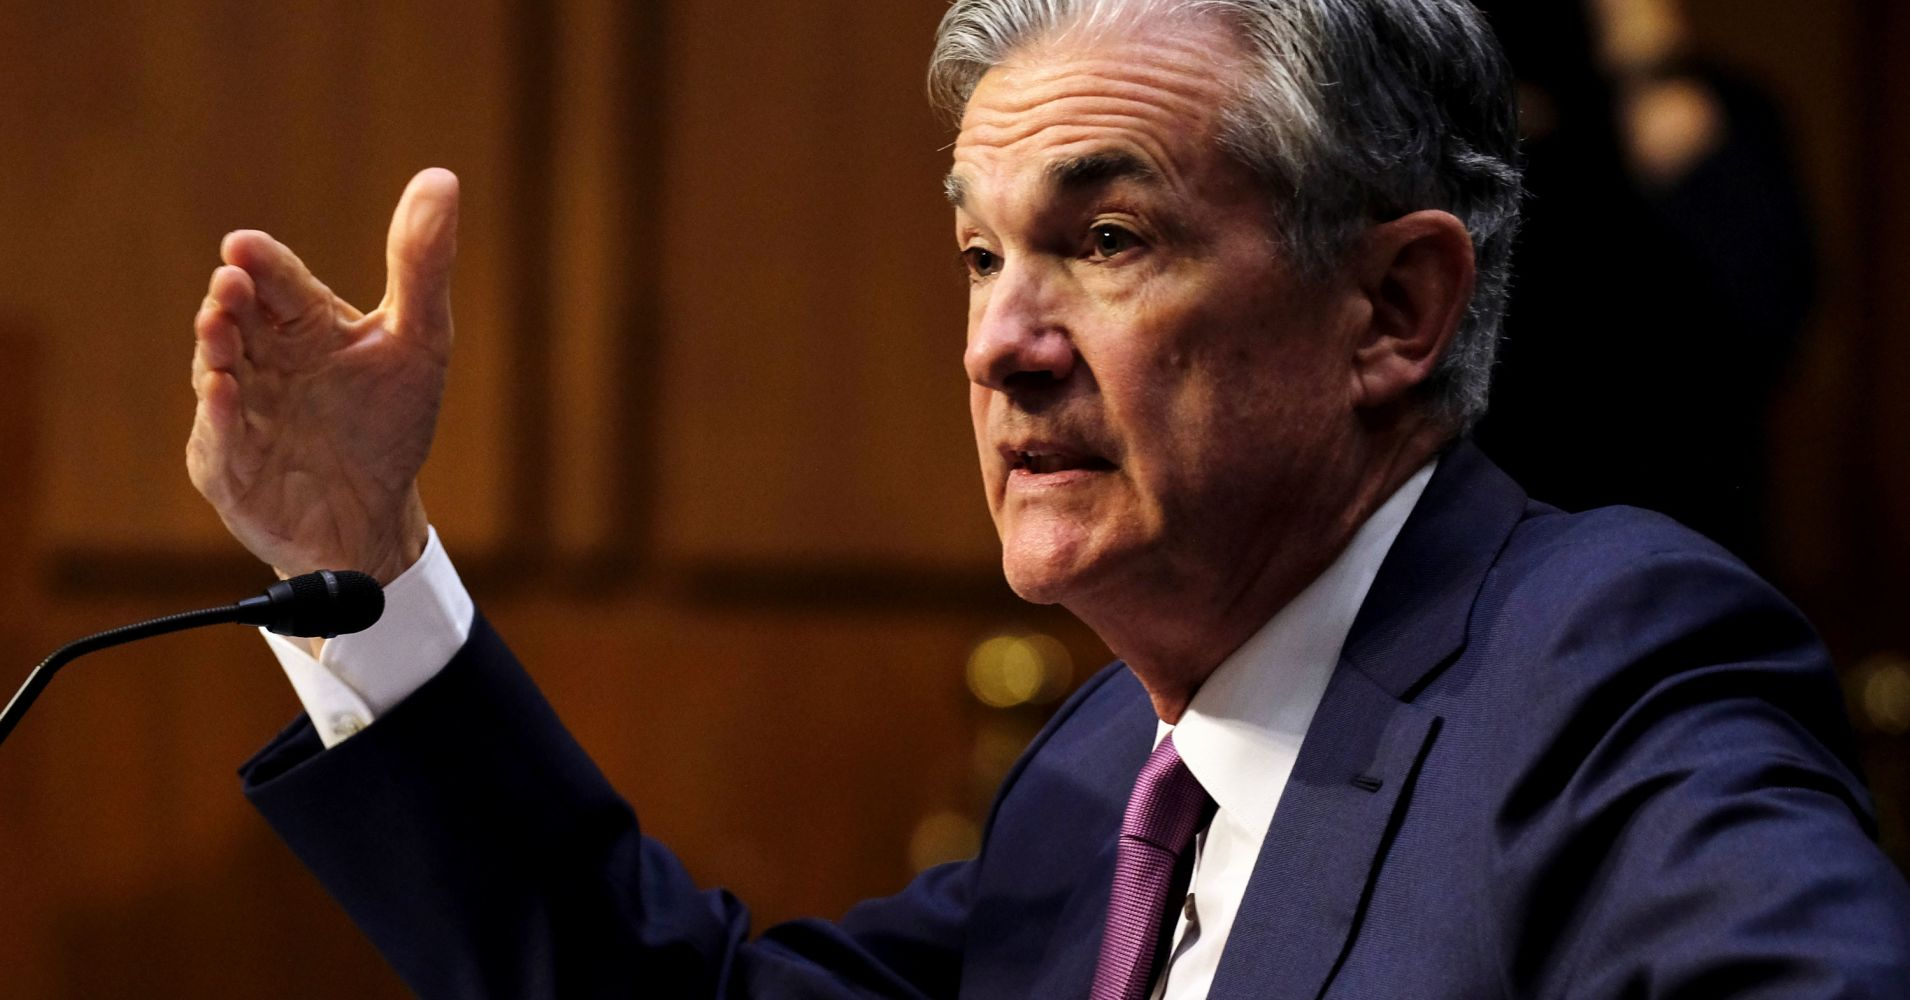 The Fed may be moving closer to ending its rally-killing balance sheet reduction